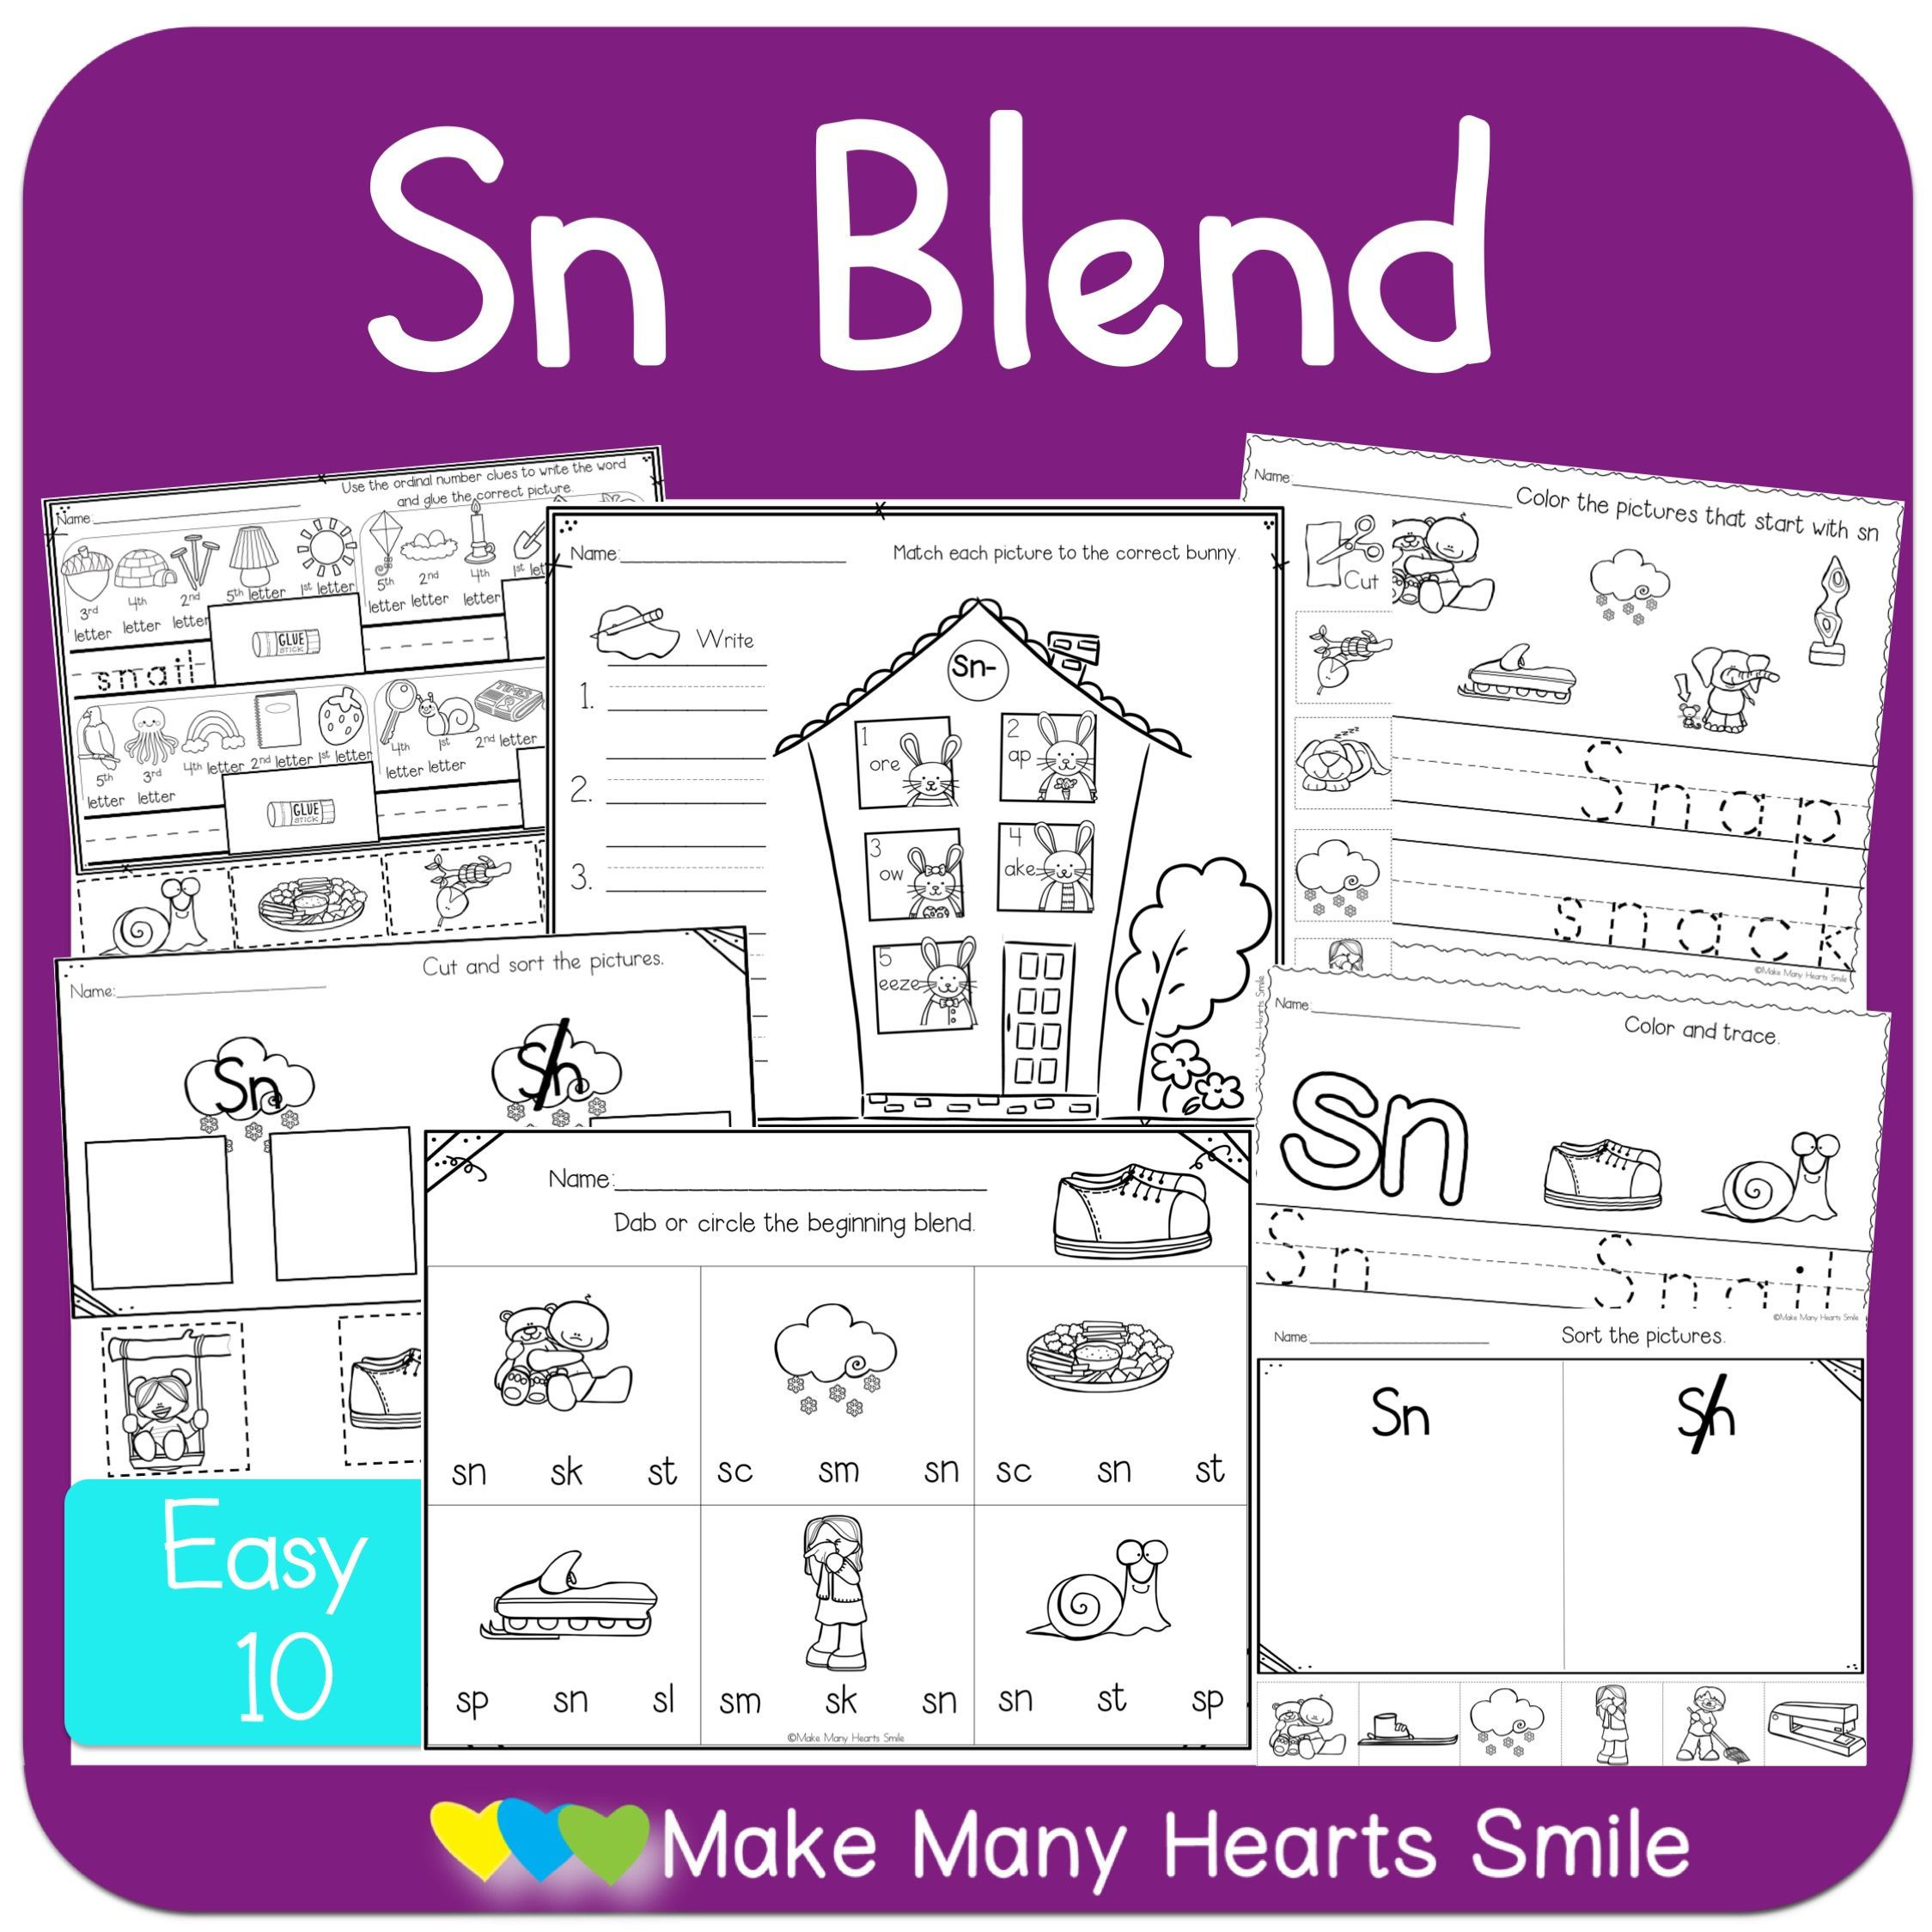 Sn Blend Fun Worksheets